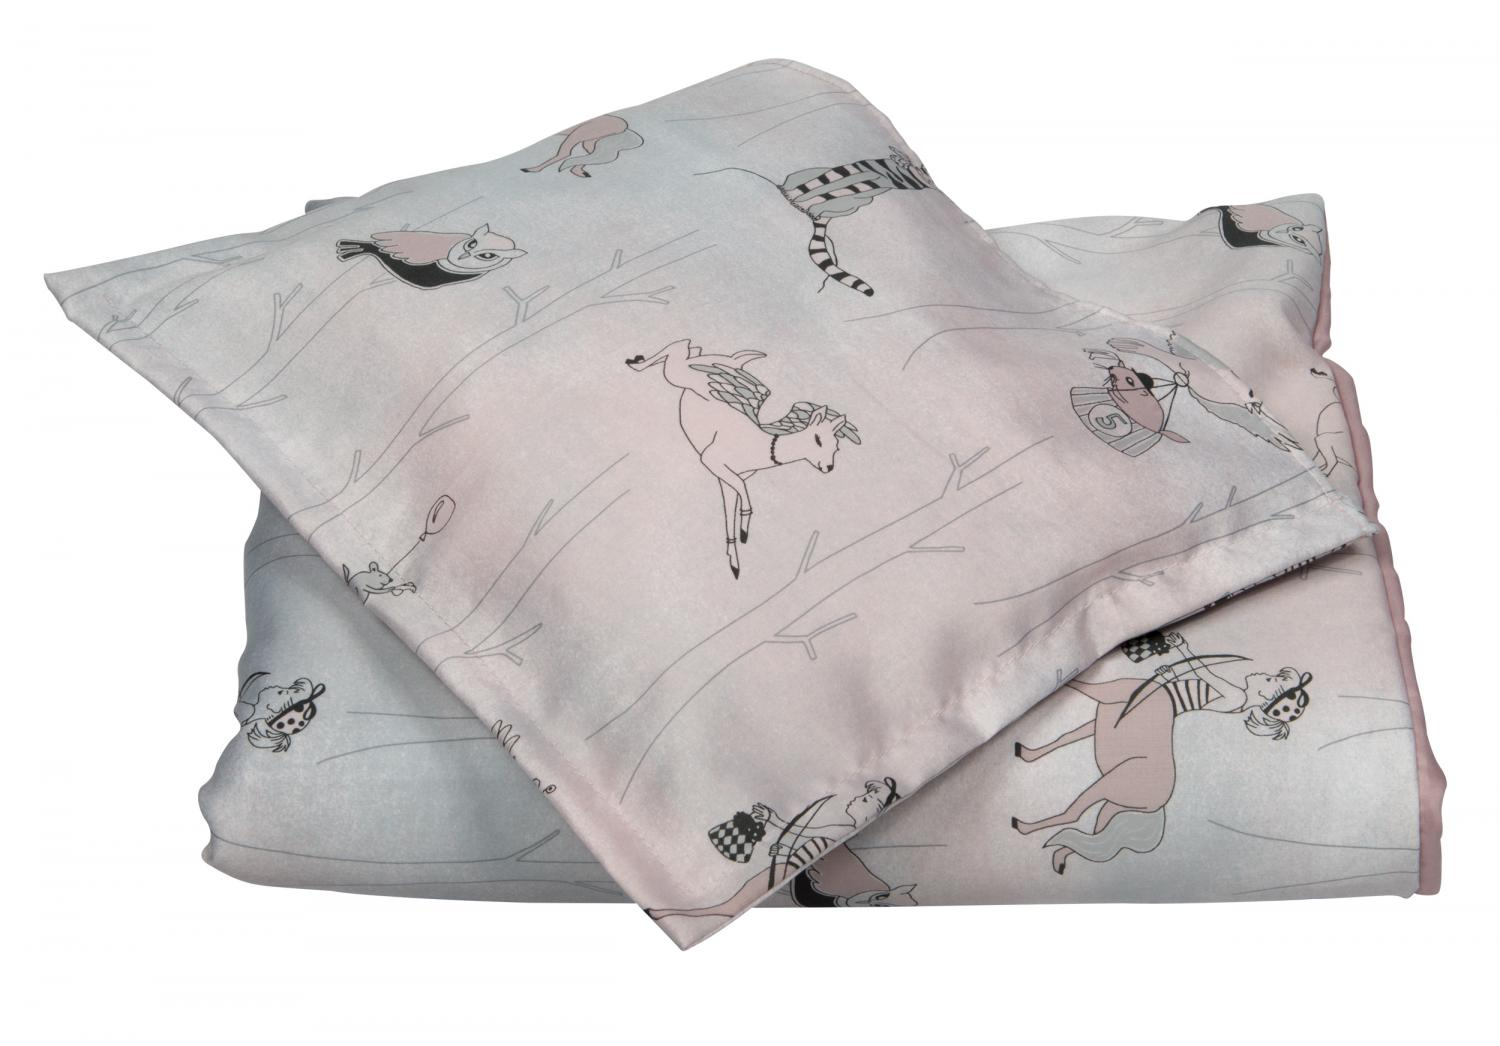 Duvet set | Woods rose | Woods & Fairytales